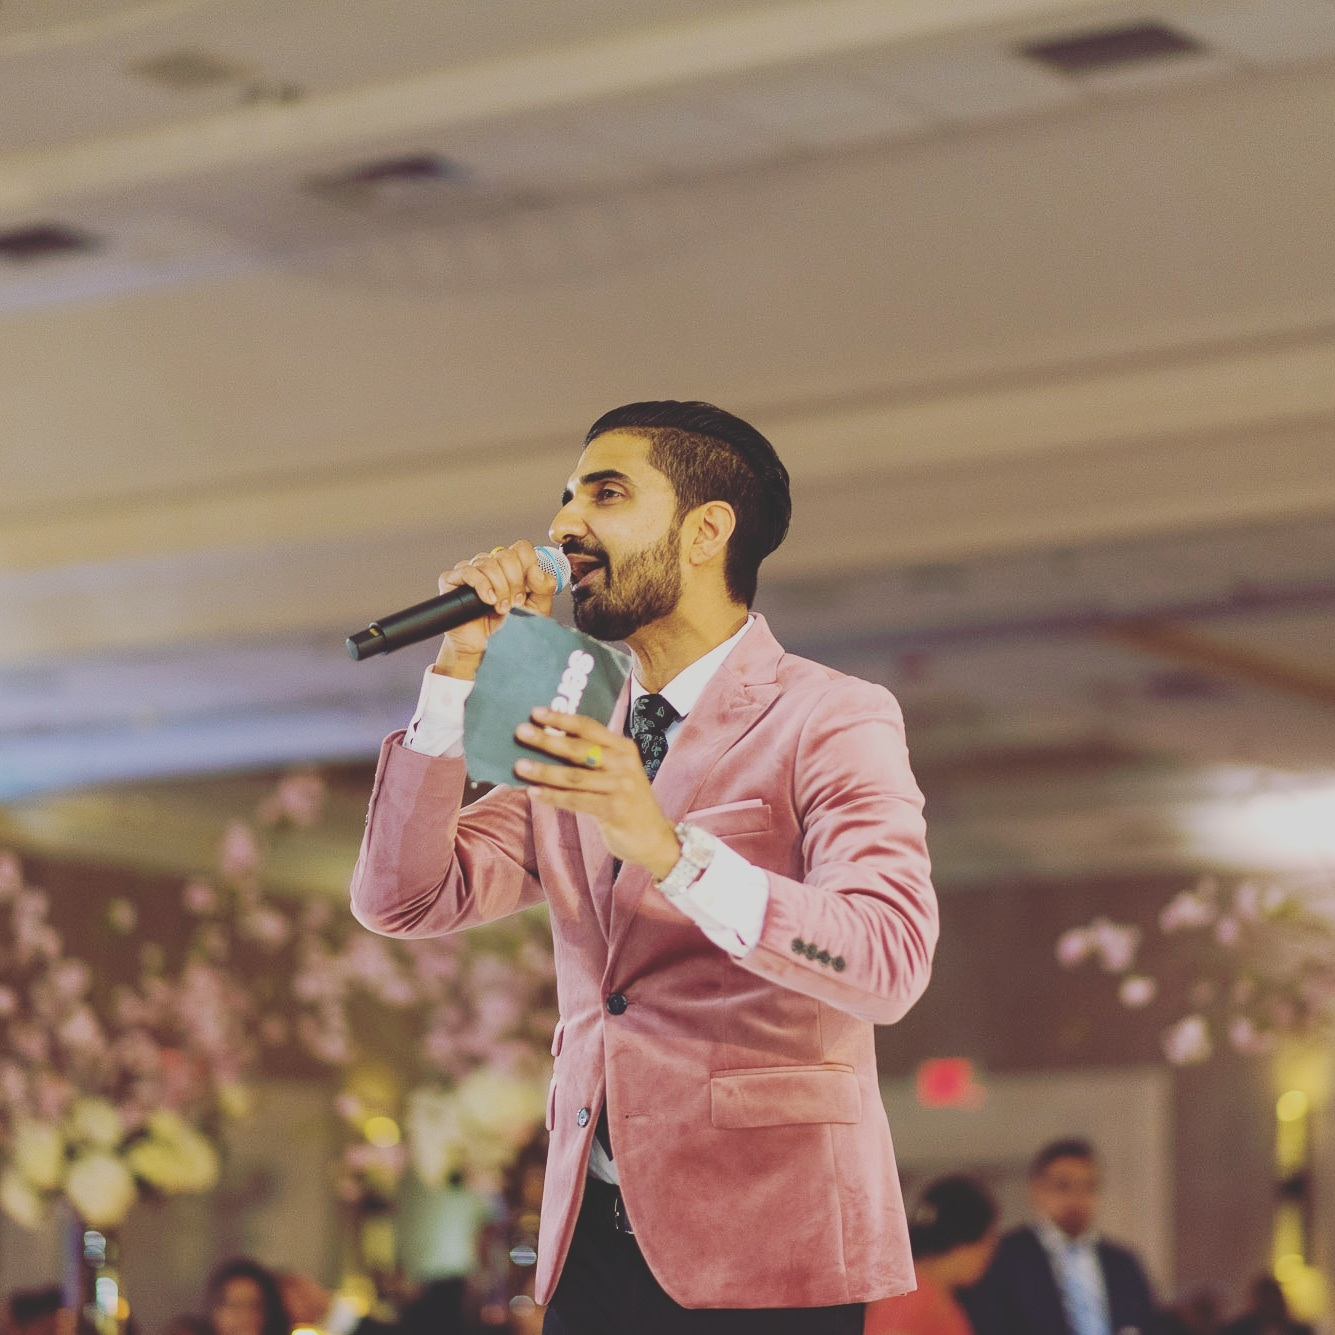 Gaurav Sood has been one of the most in-demand South Asian DJ's in North America since the early 2000's. He is the premier Indian DJ in New Jersey.